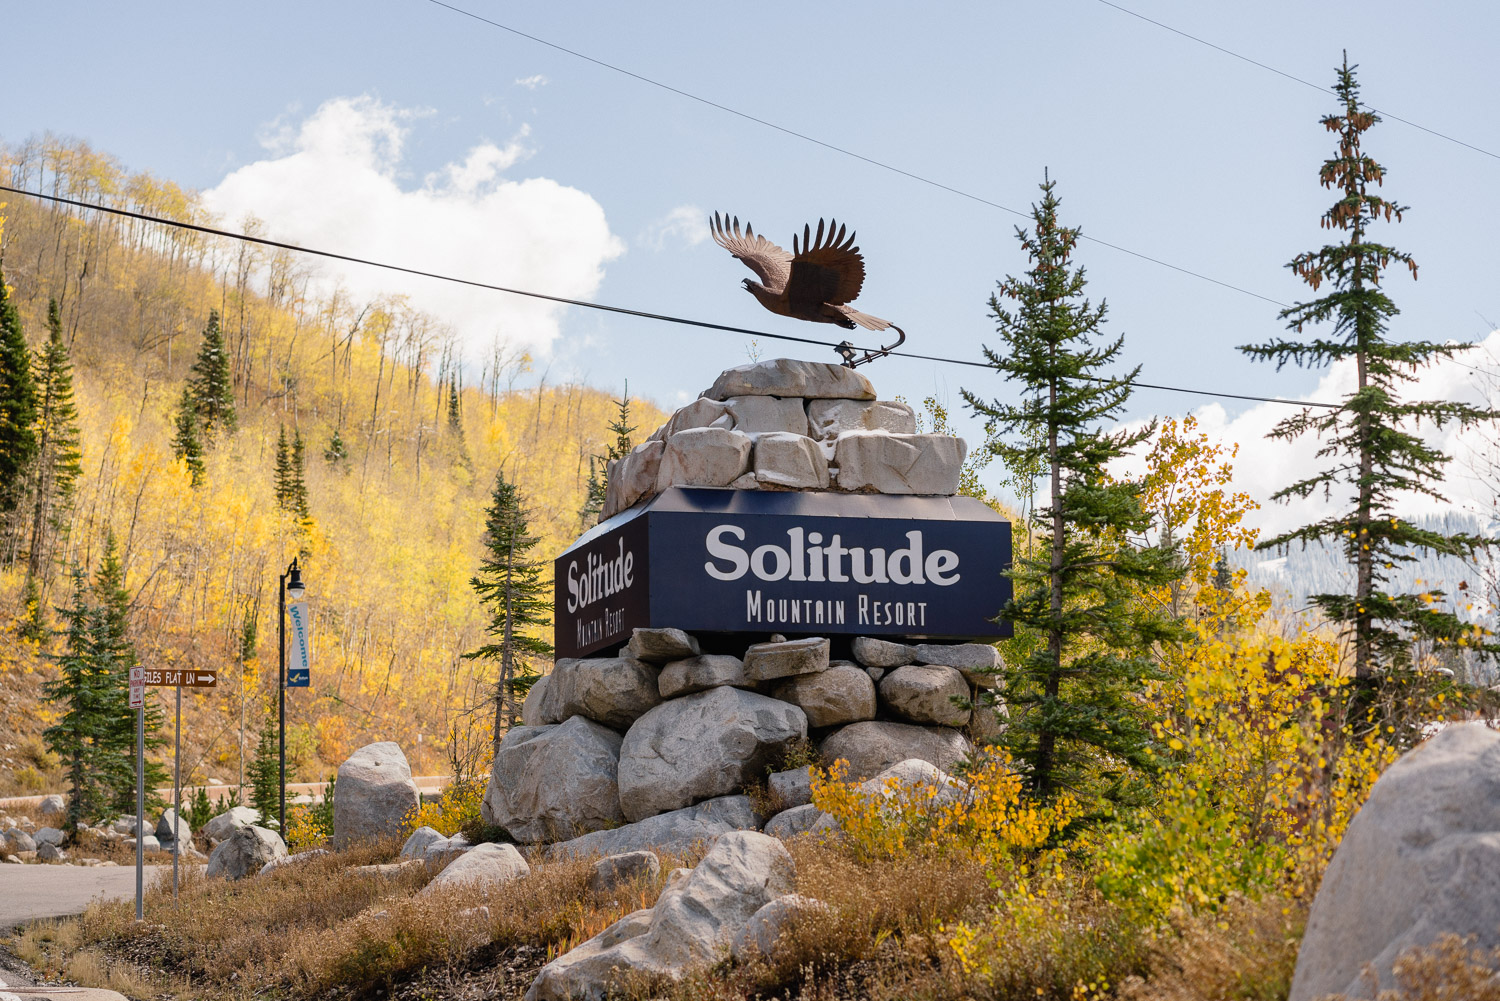 solitude mountain resort sign in sunshine fall trees